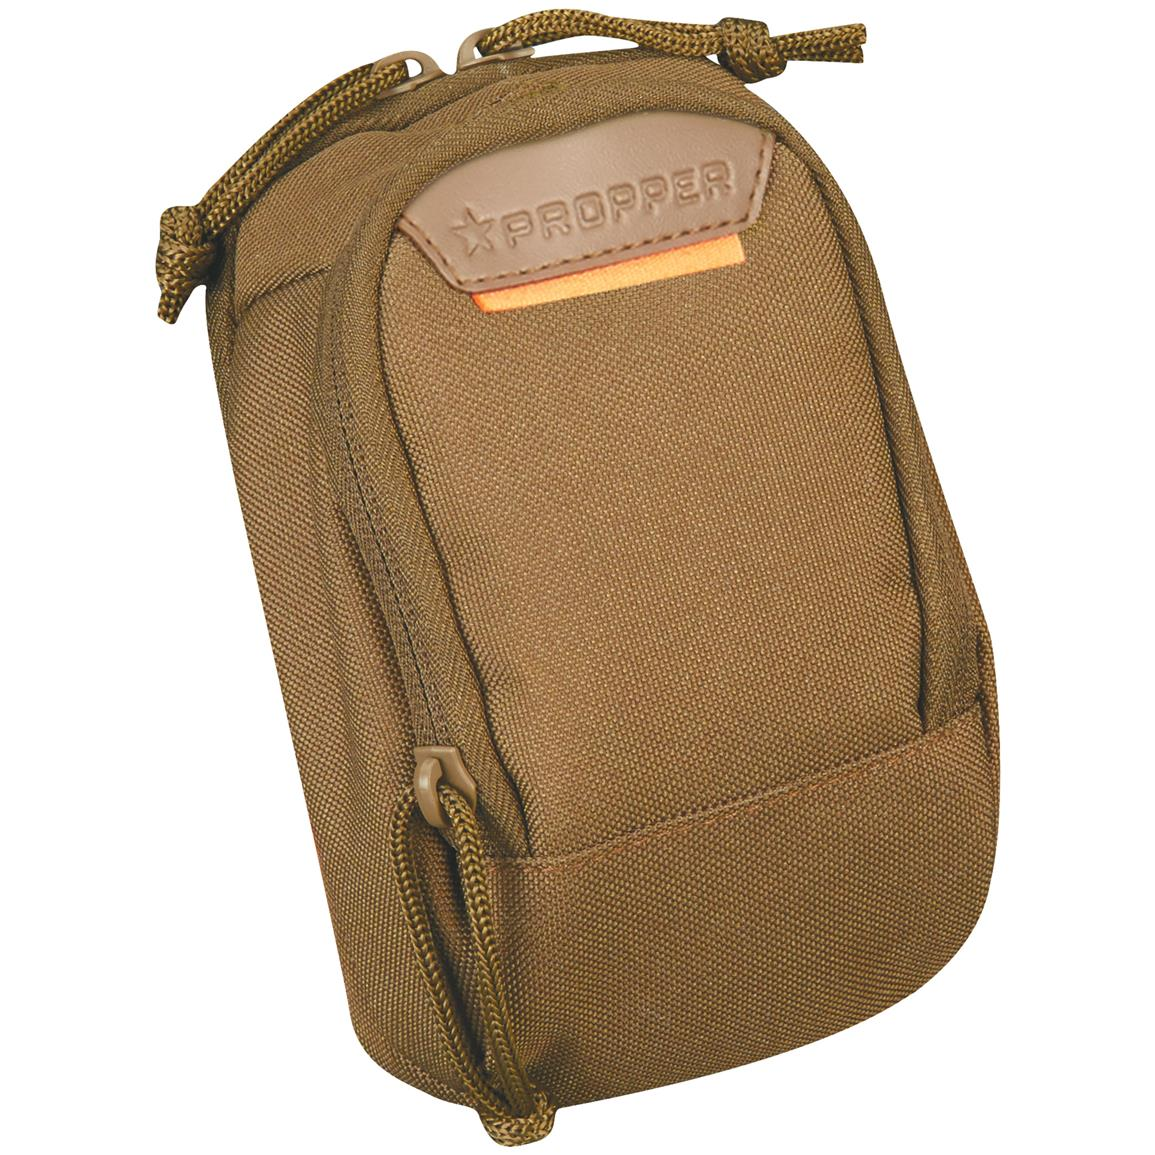 Propper 2-pocket Media Pouch with MOLLE, Coyote